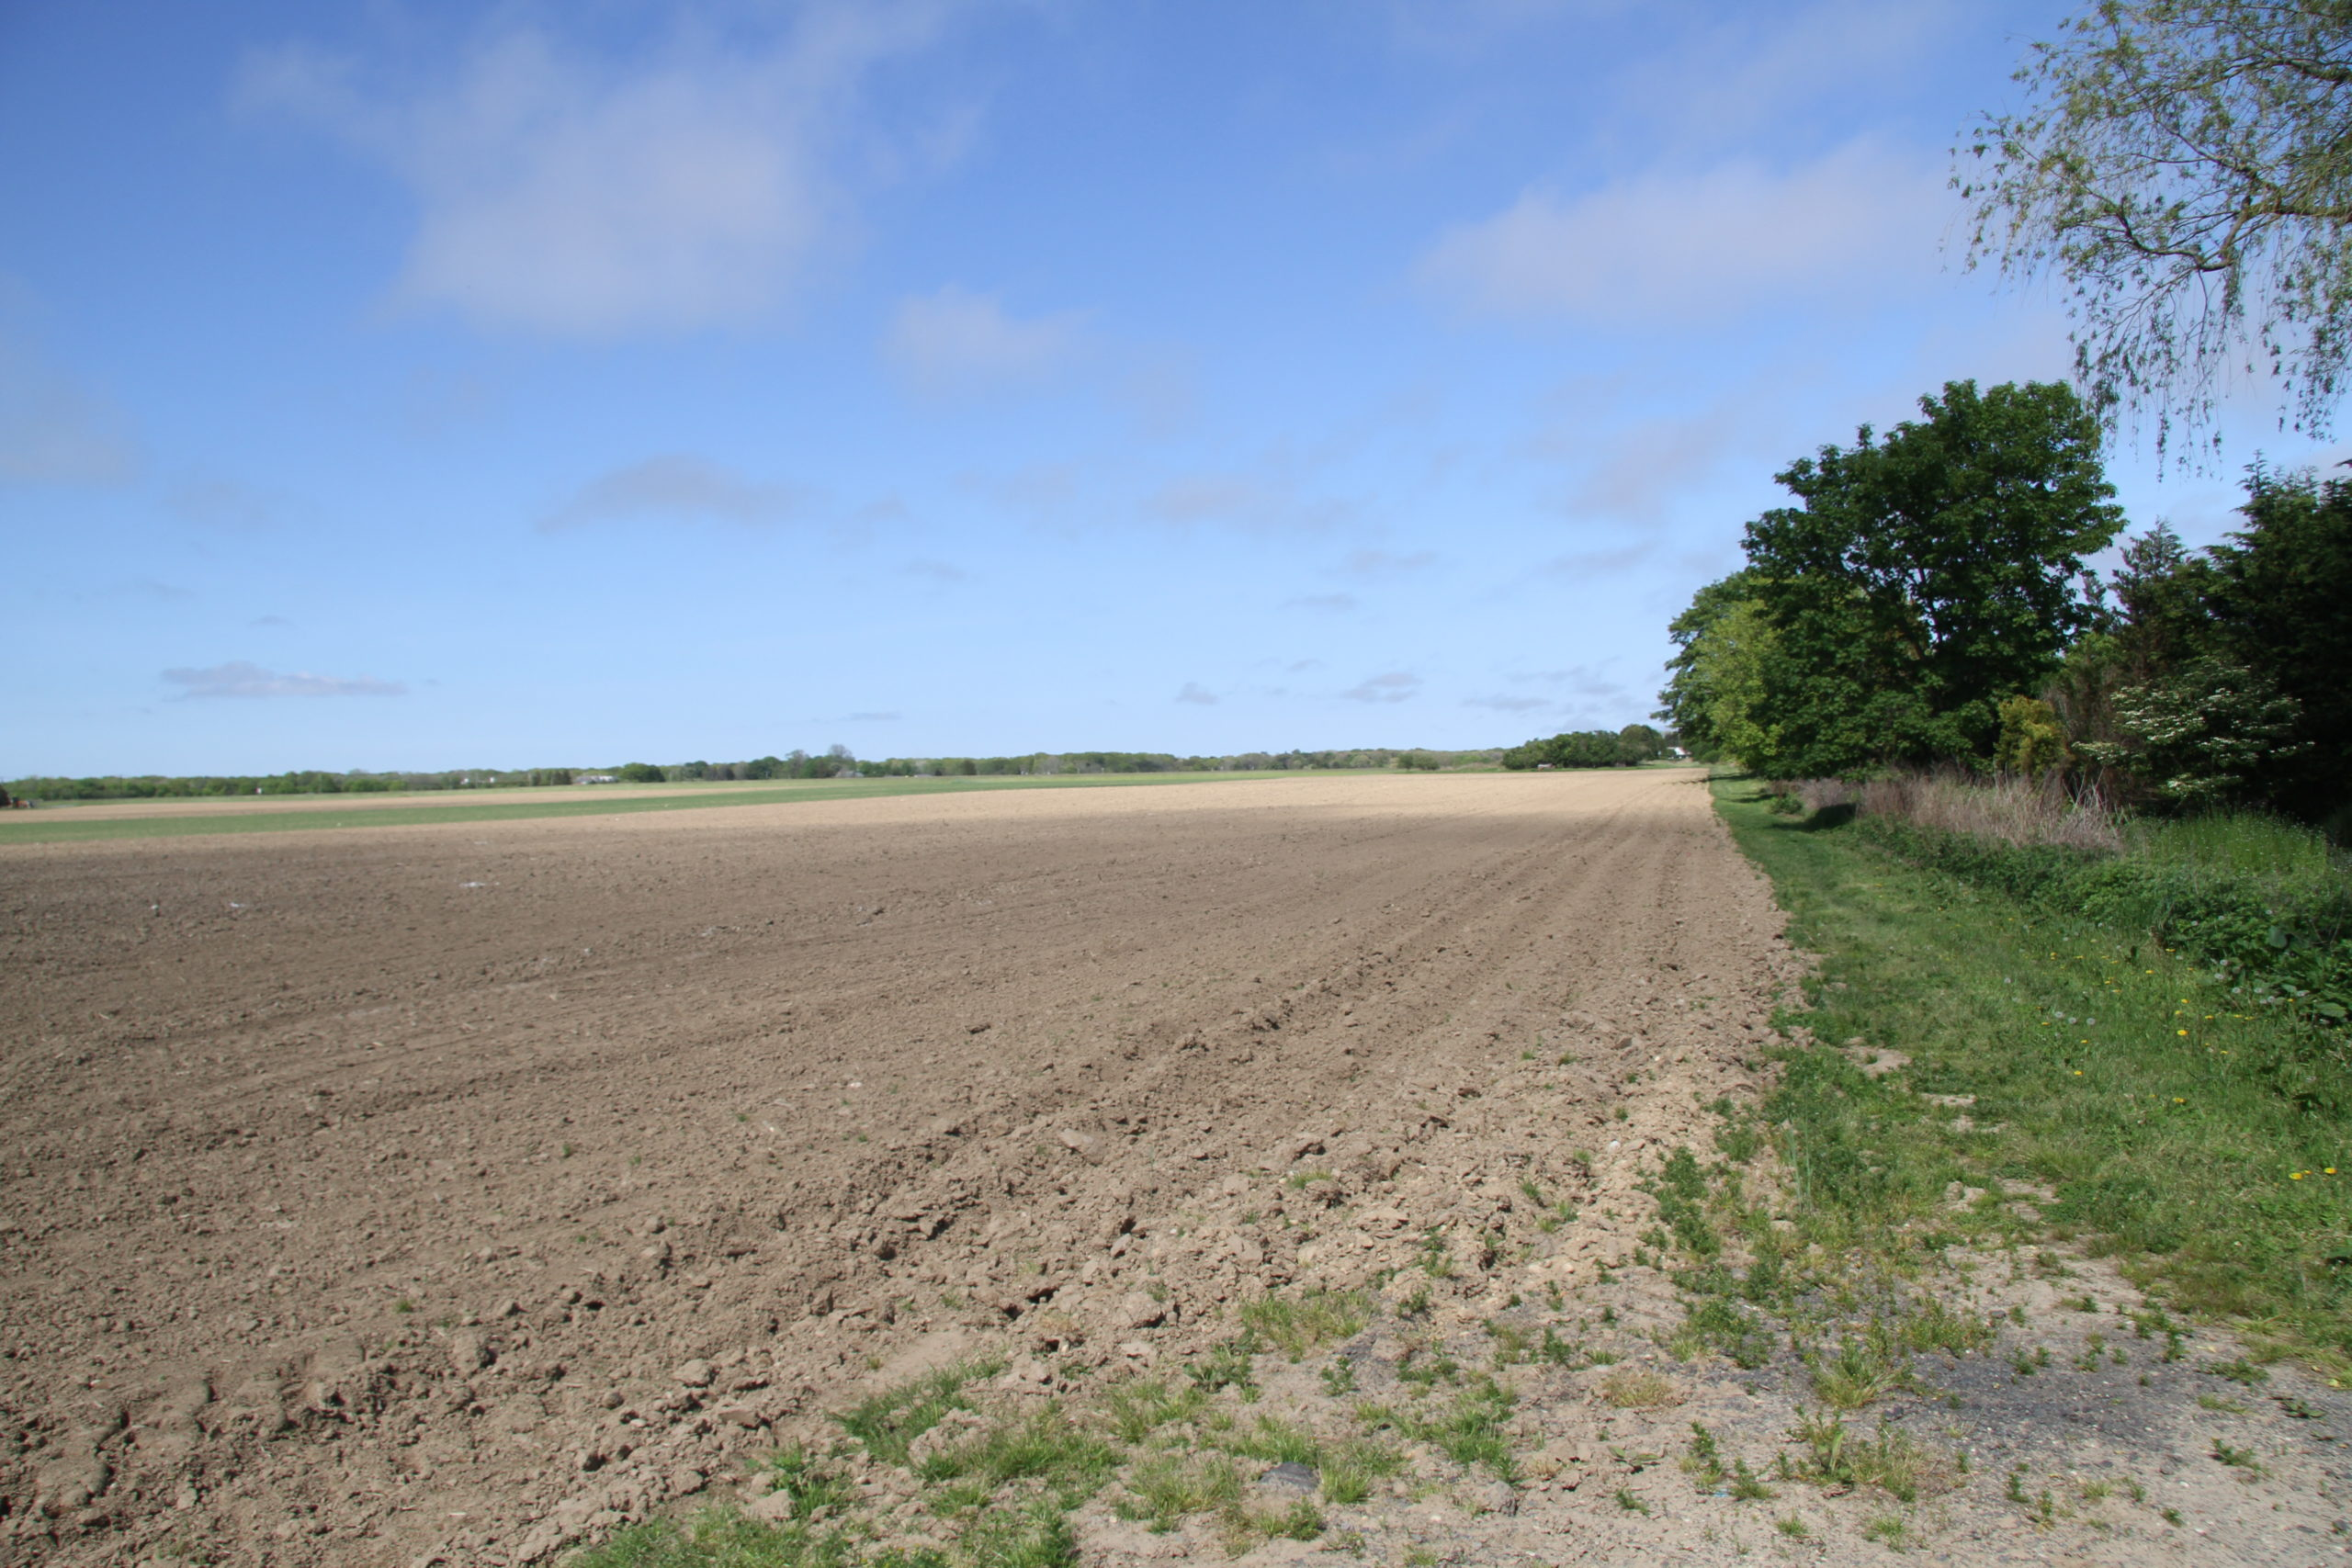 A Sagaponack farmer stepped on some toes earlier this Spring when he plowed up the fringes of a protected hiking trail.